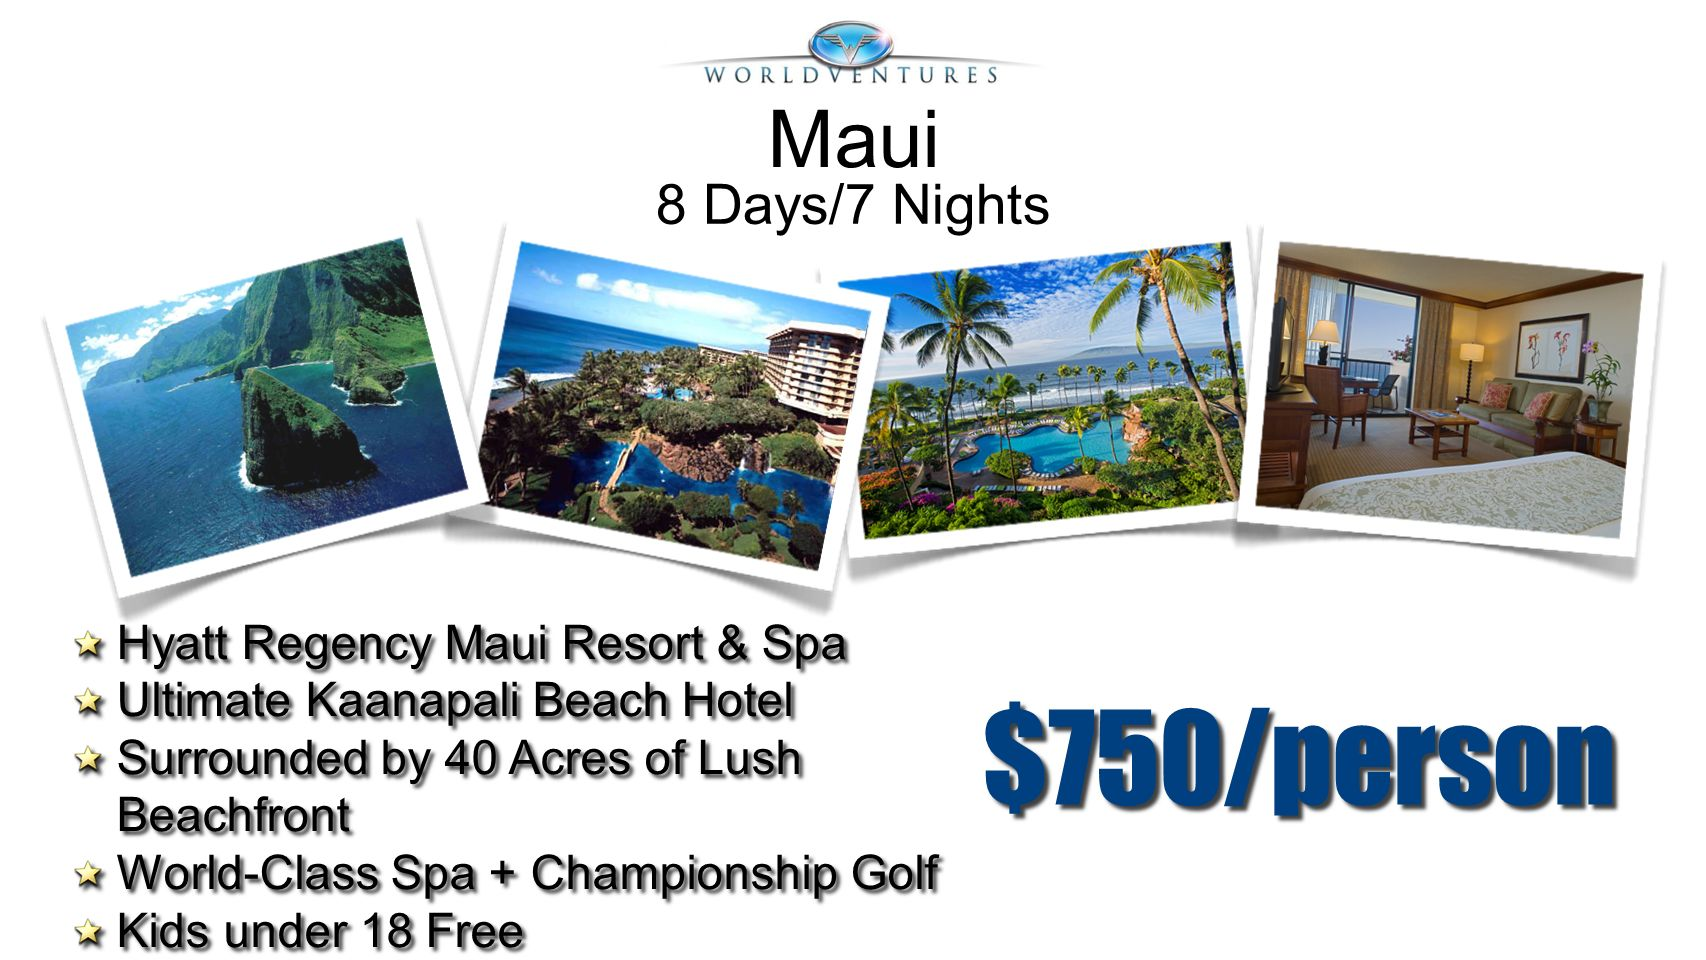 $750/person Hyatt Regency Maui Resort & Spa Ultimate Kaanapali Beach Hotel Surrounded by 40 Acres of Lush Beachfront World-Class Spa + Championship Go